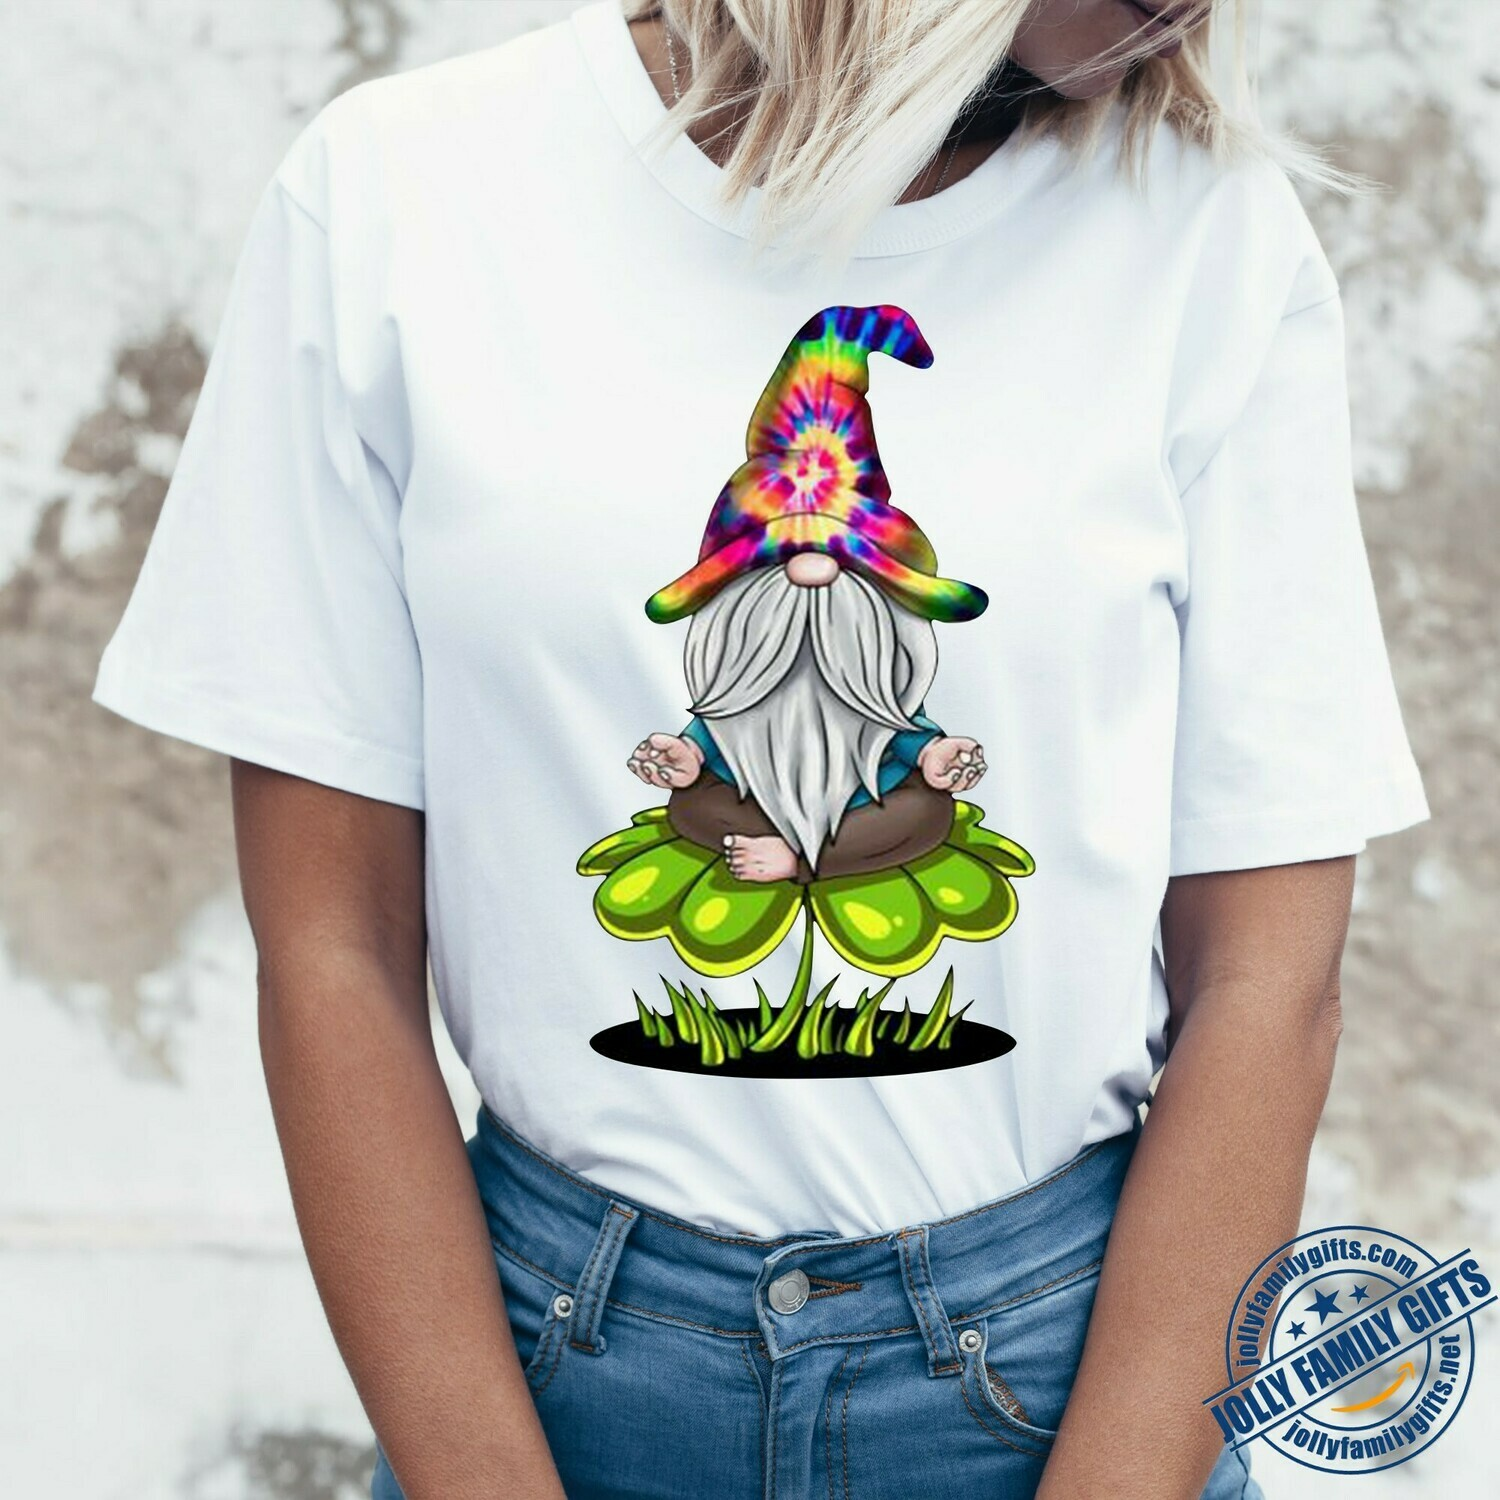 Hippie Bohemian Gnome Yoga Gnomaste Asanas Pose gift for Yoga lover T-Shirt Hoodie Sweatshirt Sweater Tee Kids Youth Gifts Jolly Family Gifts